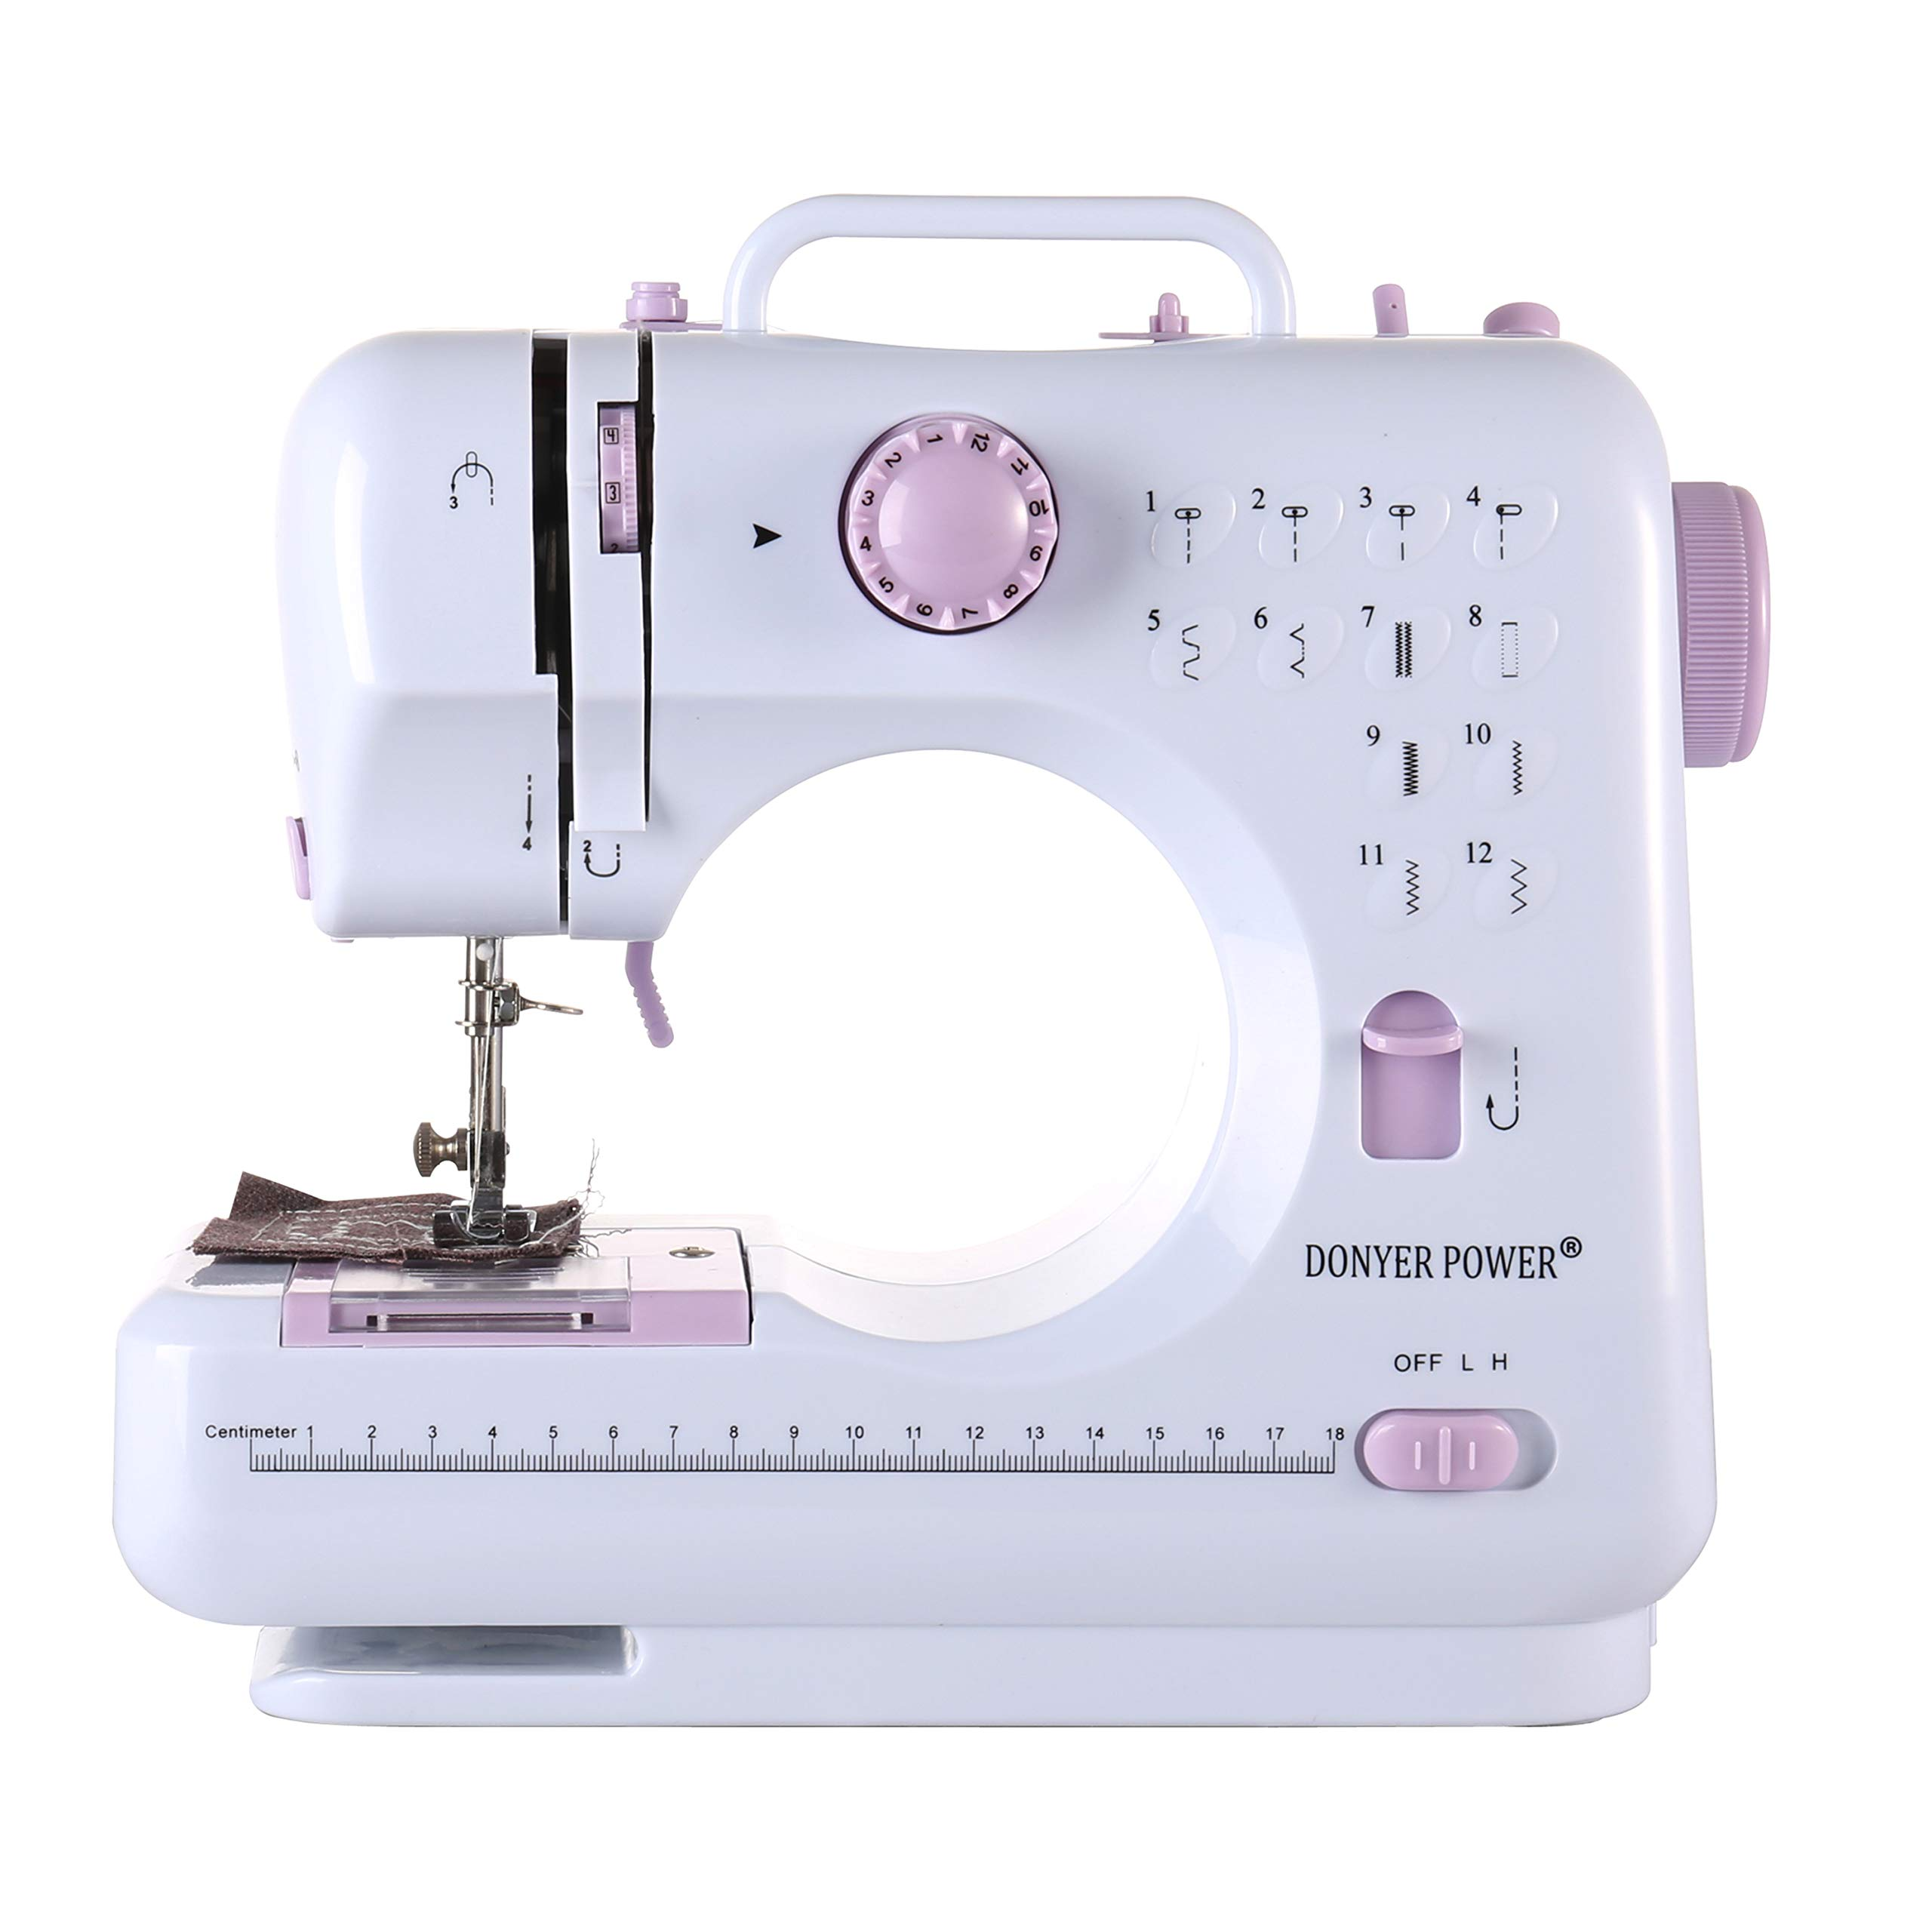 - Electric Overlock Sewing Machines Small Household Sewing Handheld Tool GD-015-AN 12 Stitches, 2 Speeds, LED Sewing Light, Foot Pedal Sewing Machine by Galadim